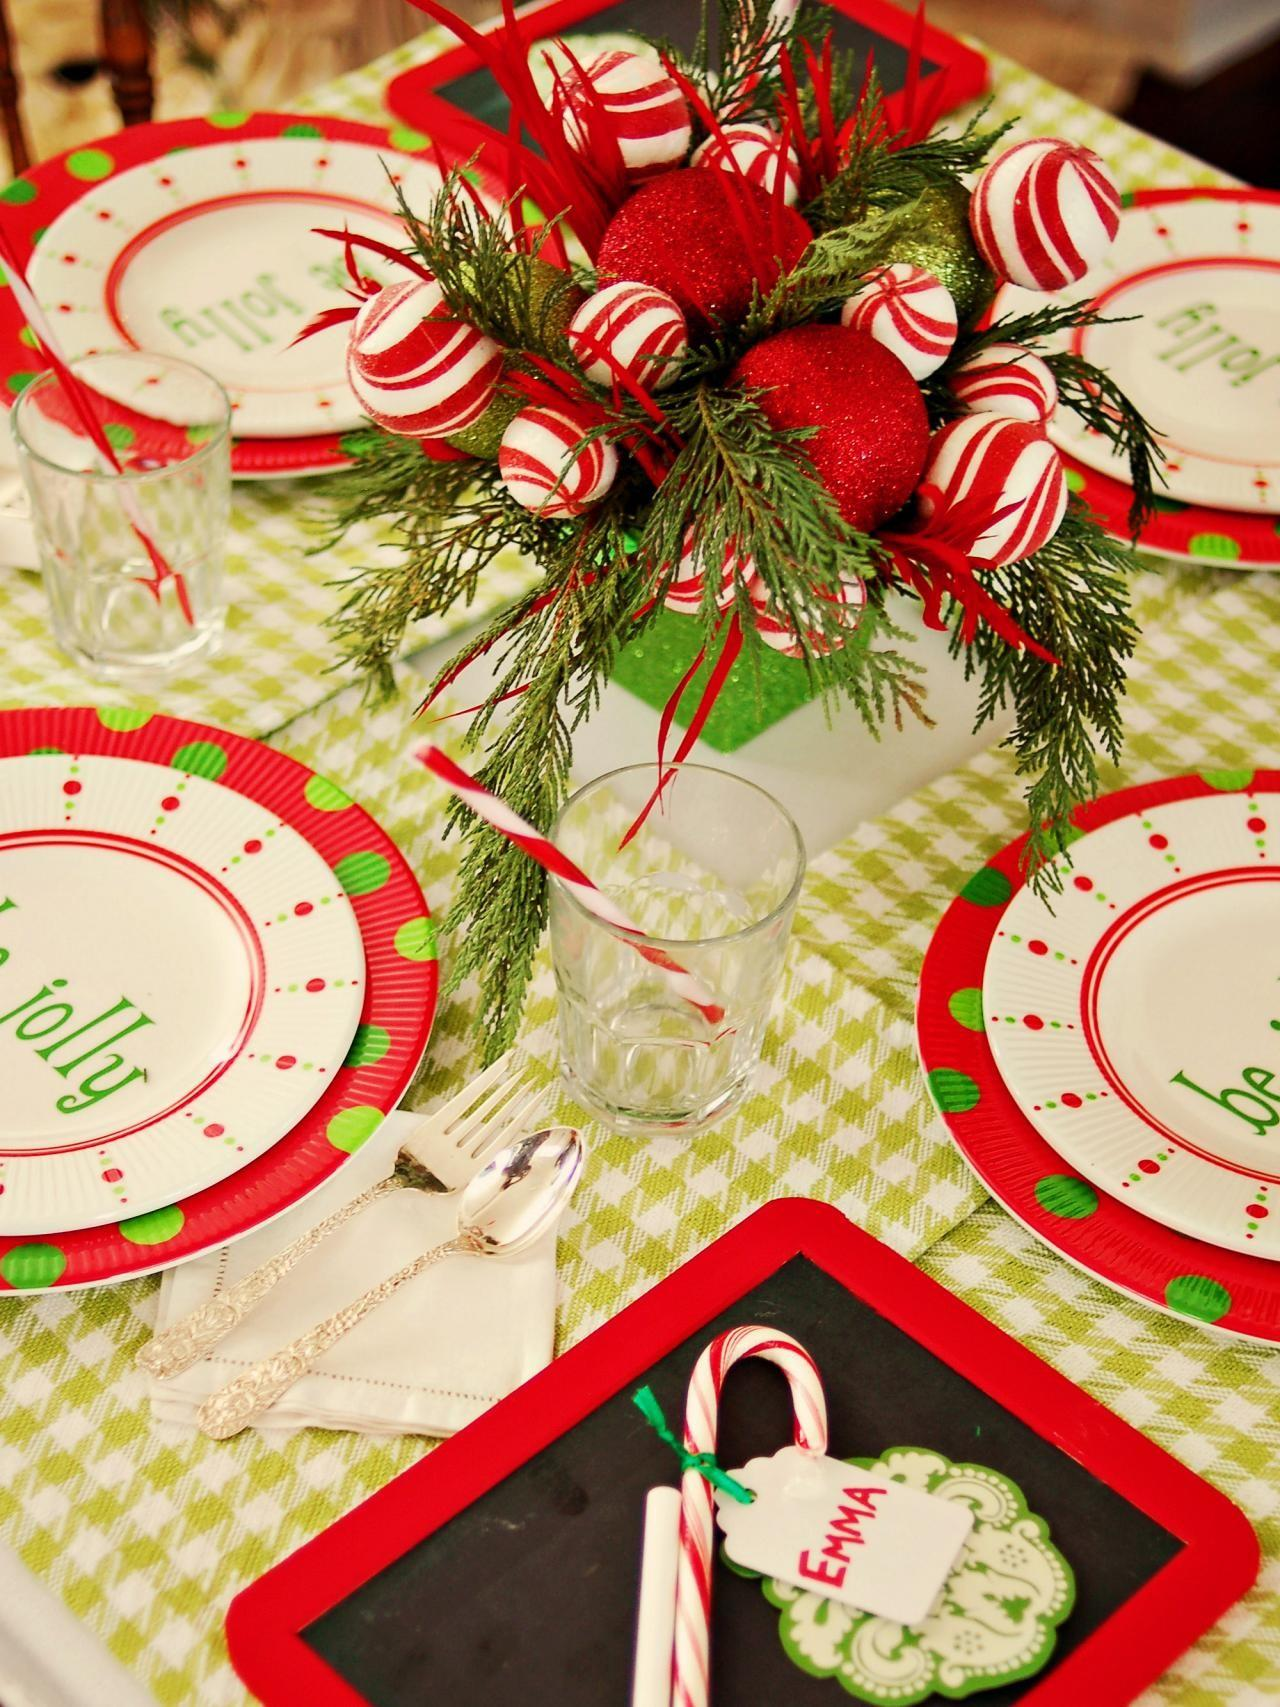 Create Festive Holiday Kids Table Entertaining Ideas